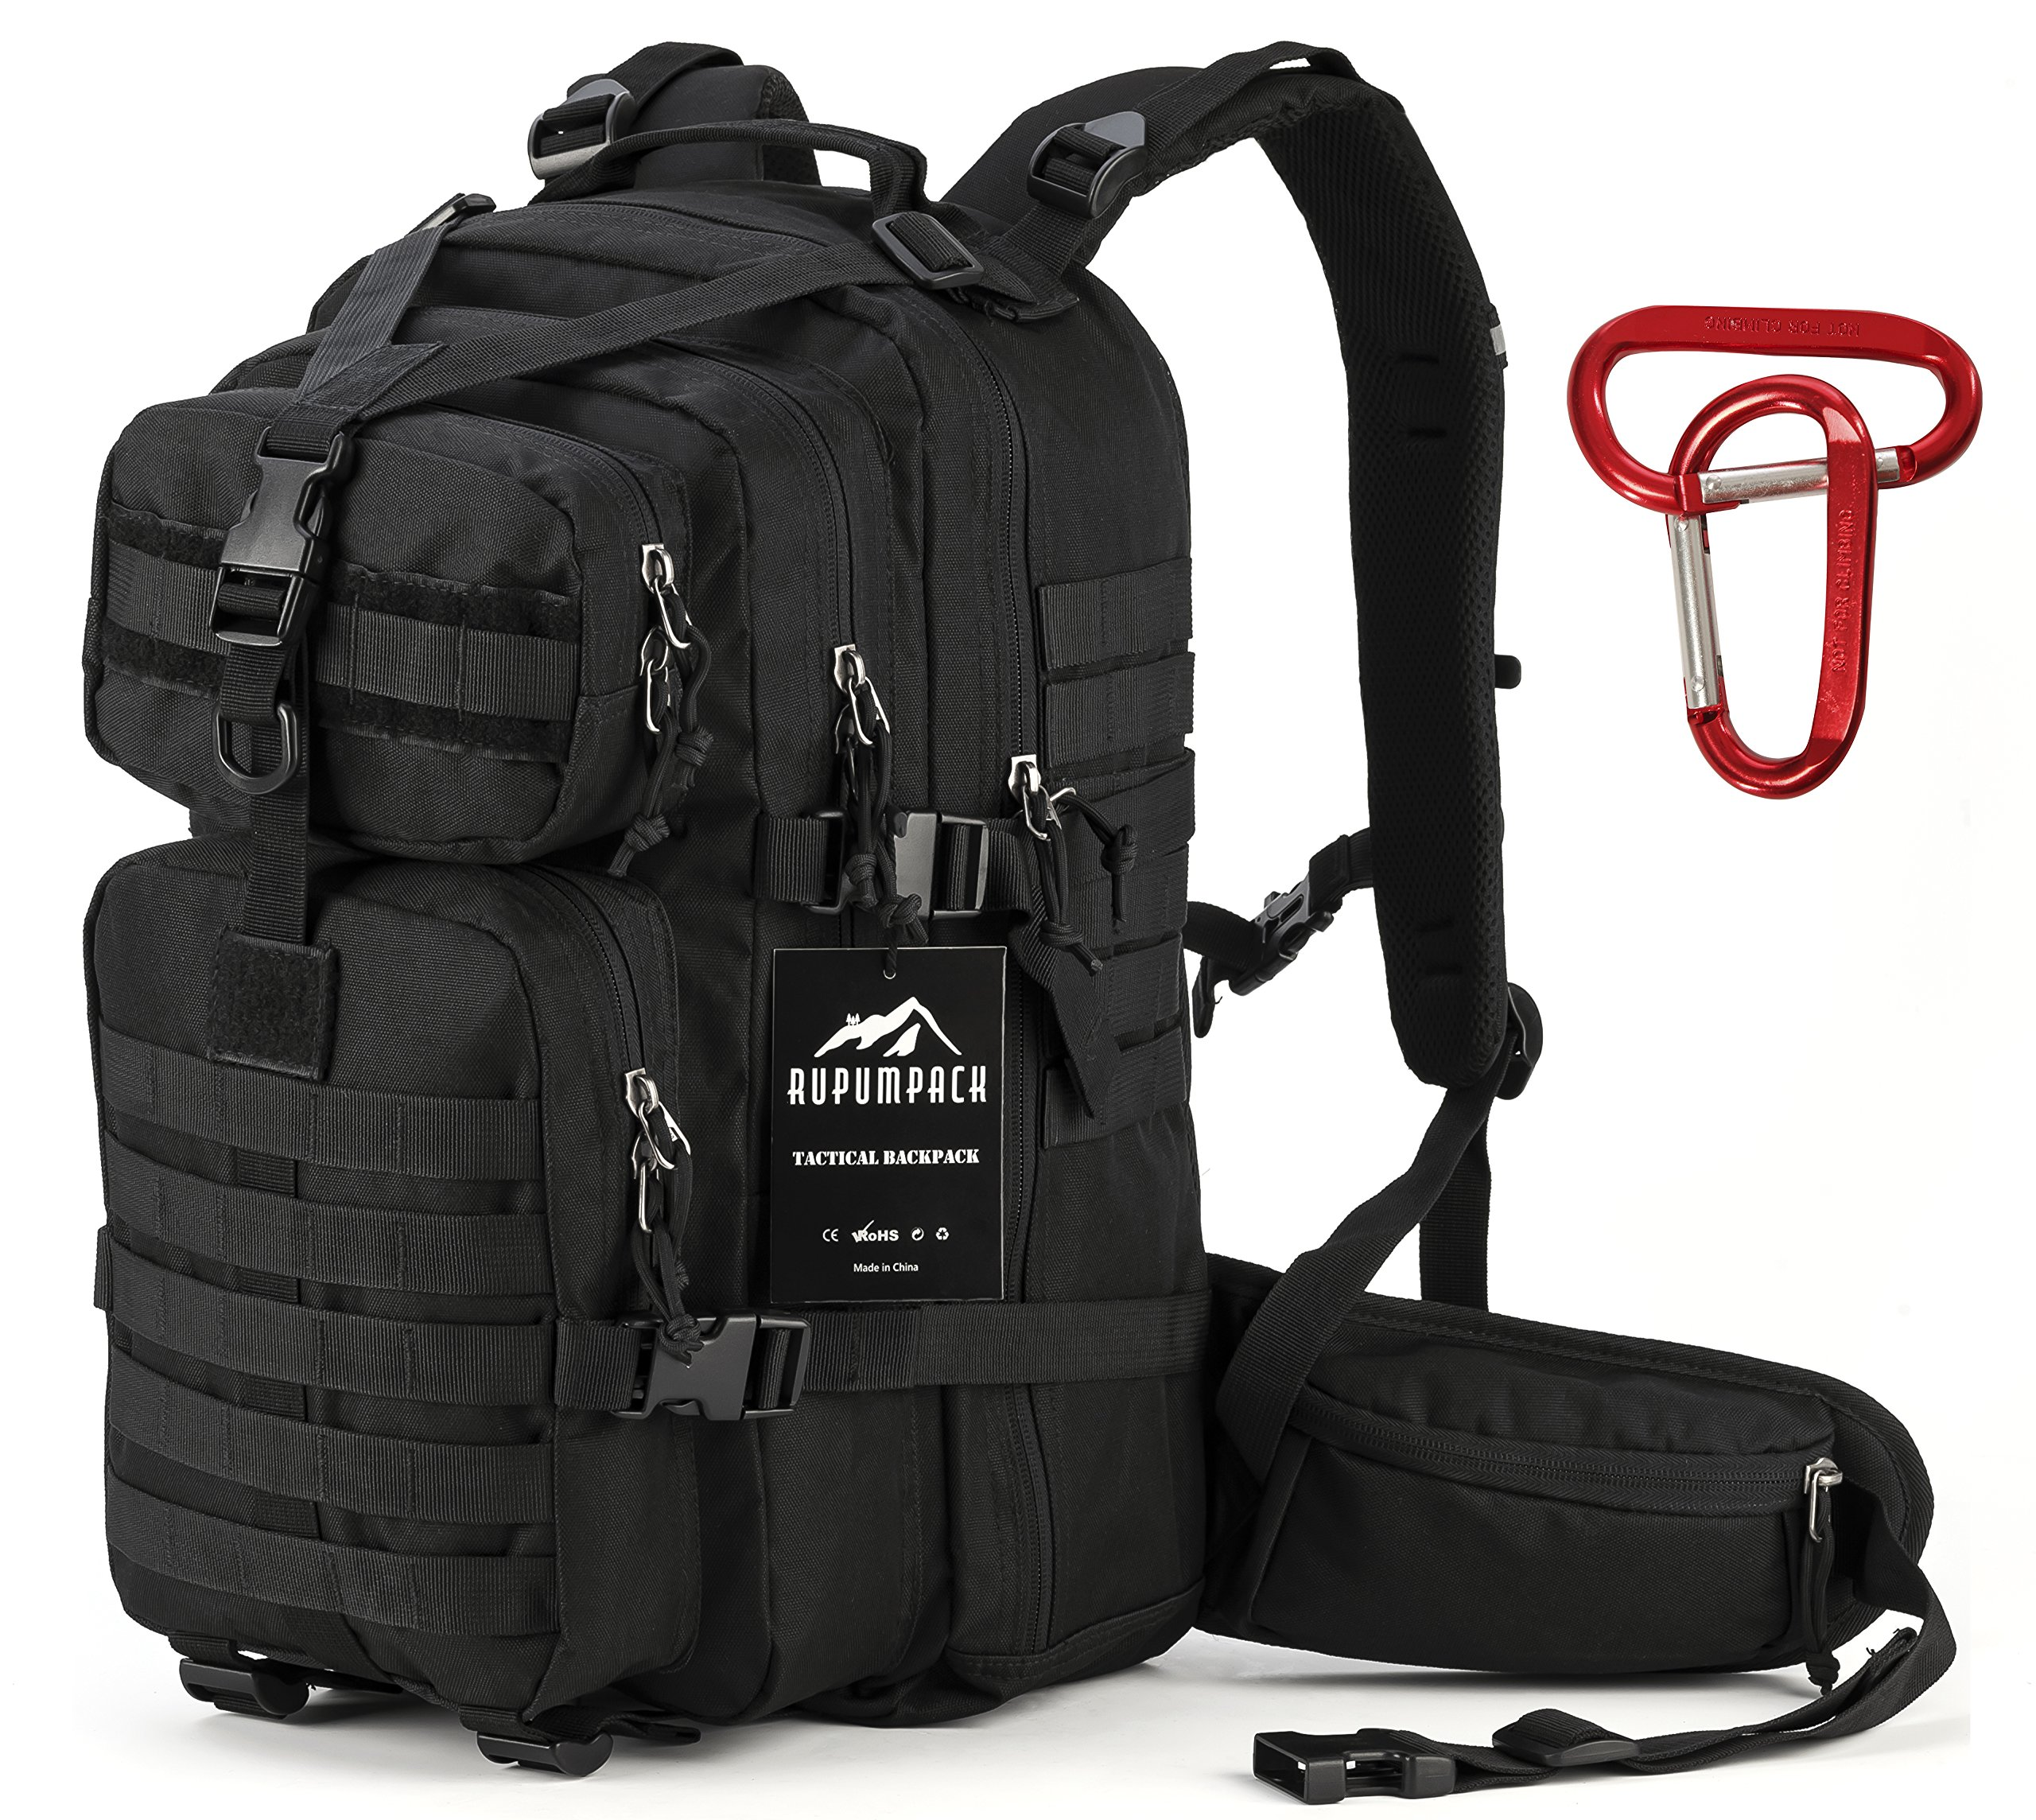 RUPUMPACK 35L Military Tactical Assault Backpack with Aluminium Carabiner Clip, Hydration Compatible Backpack, Army MOLLE Bug Out Bag for Outdoor Hiking Camping Trekking Hunting Daypack, Black by RUPUMPACK